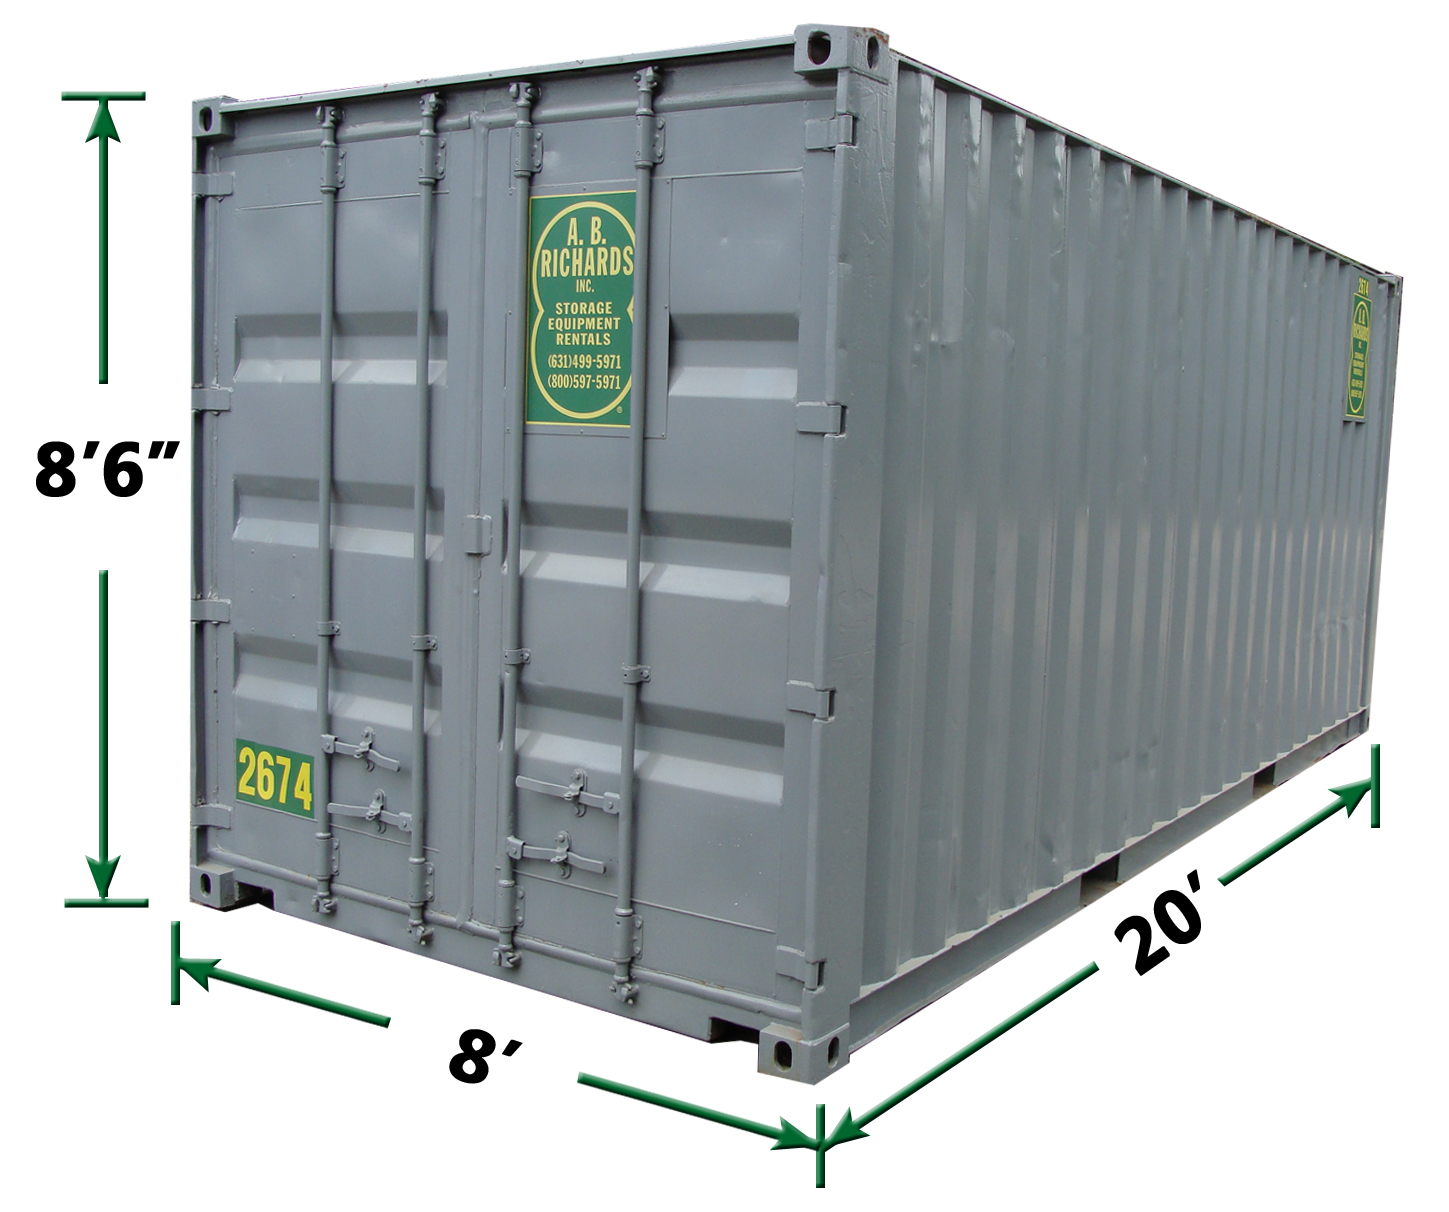 Renting 20' Storage Units from A.B. Richards